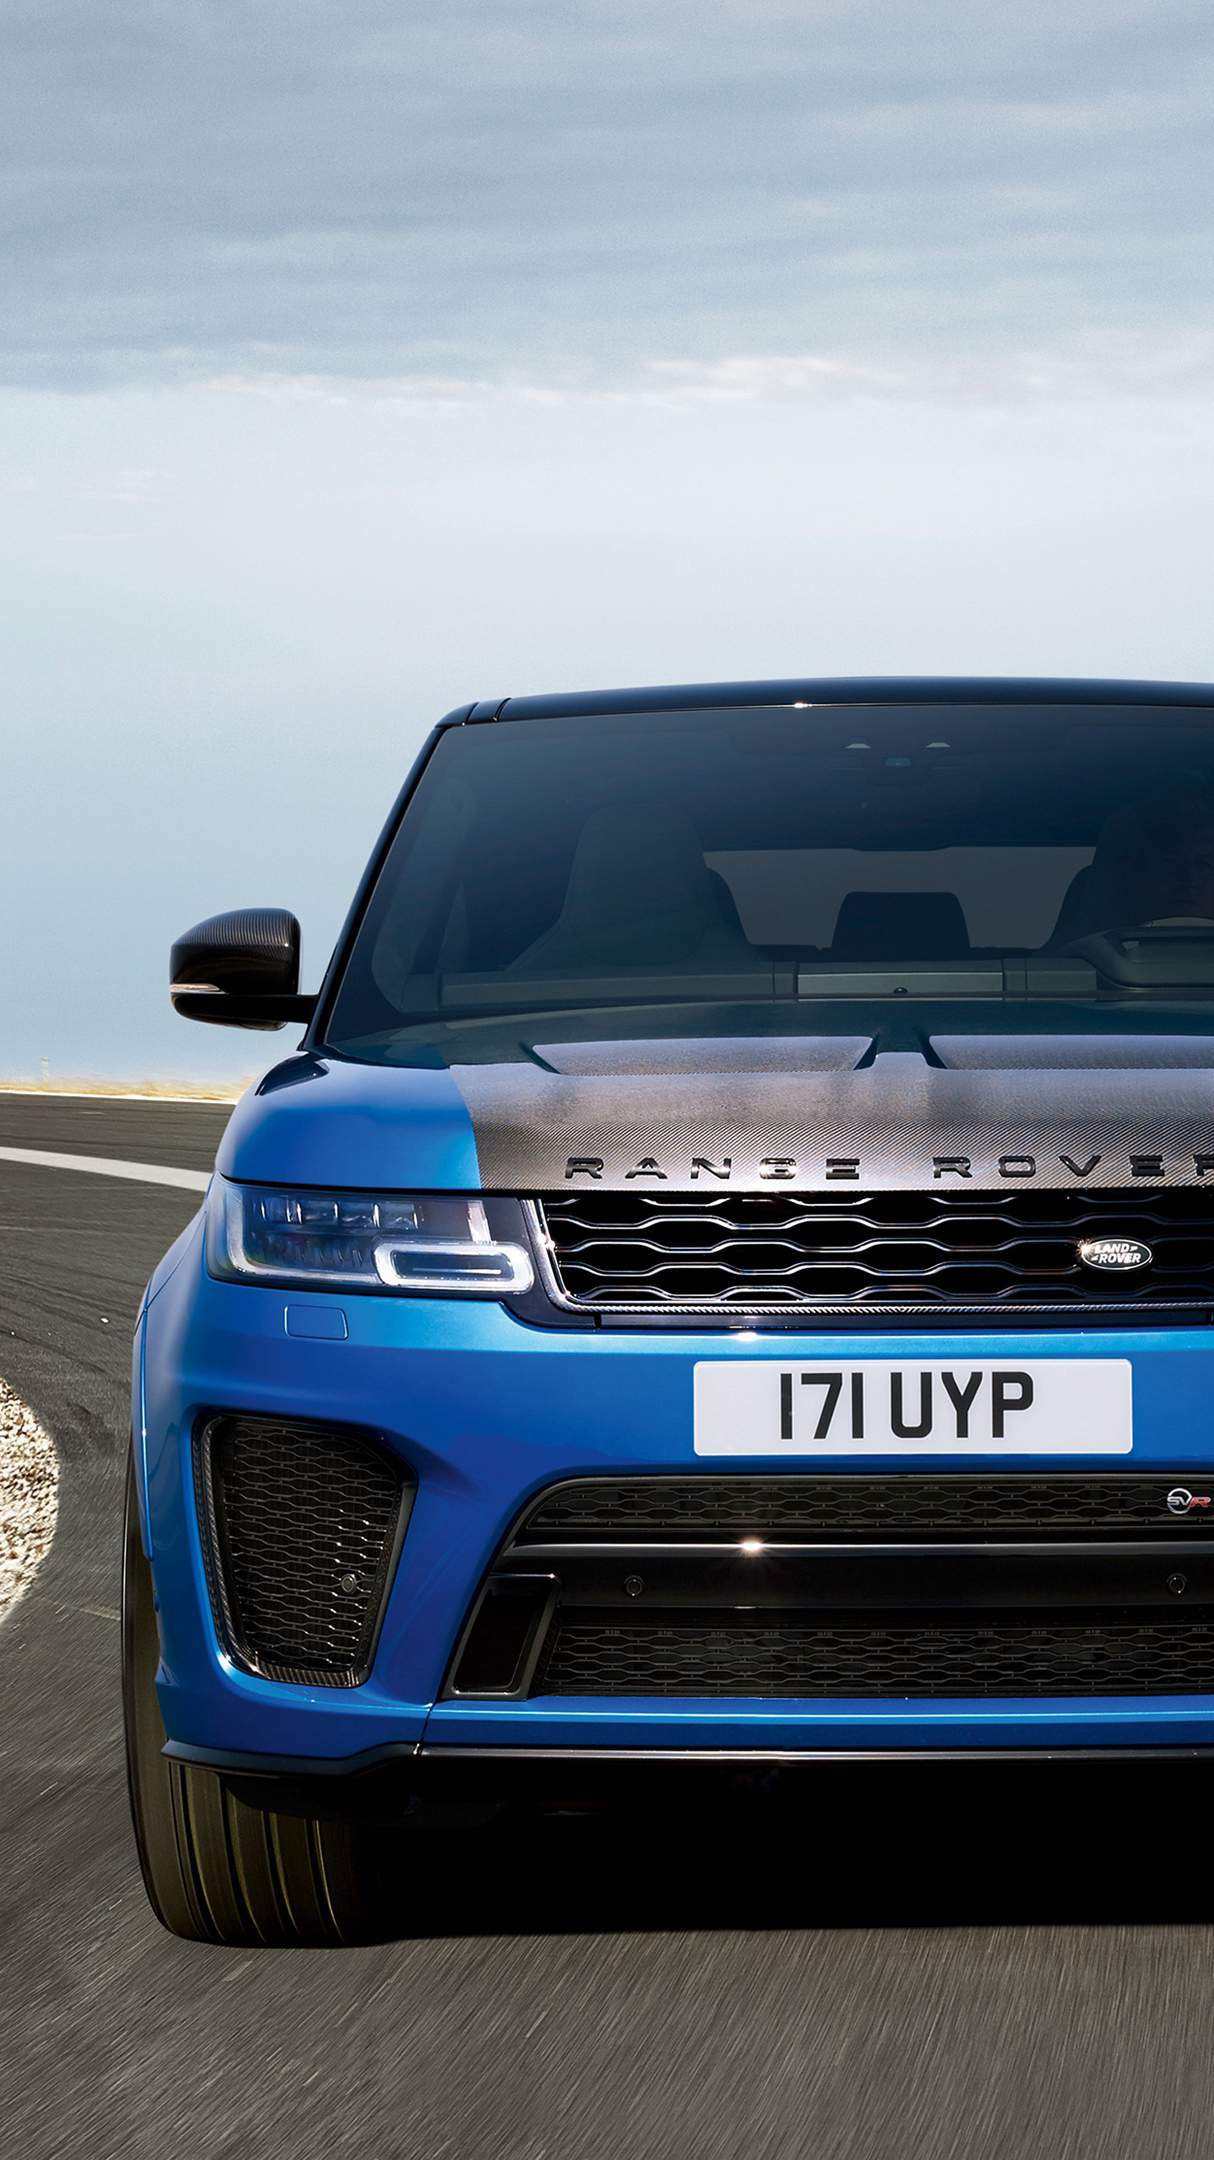 Range rover sport svr hd car iPhone Wallpaper